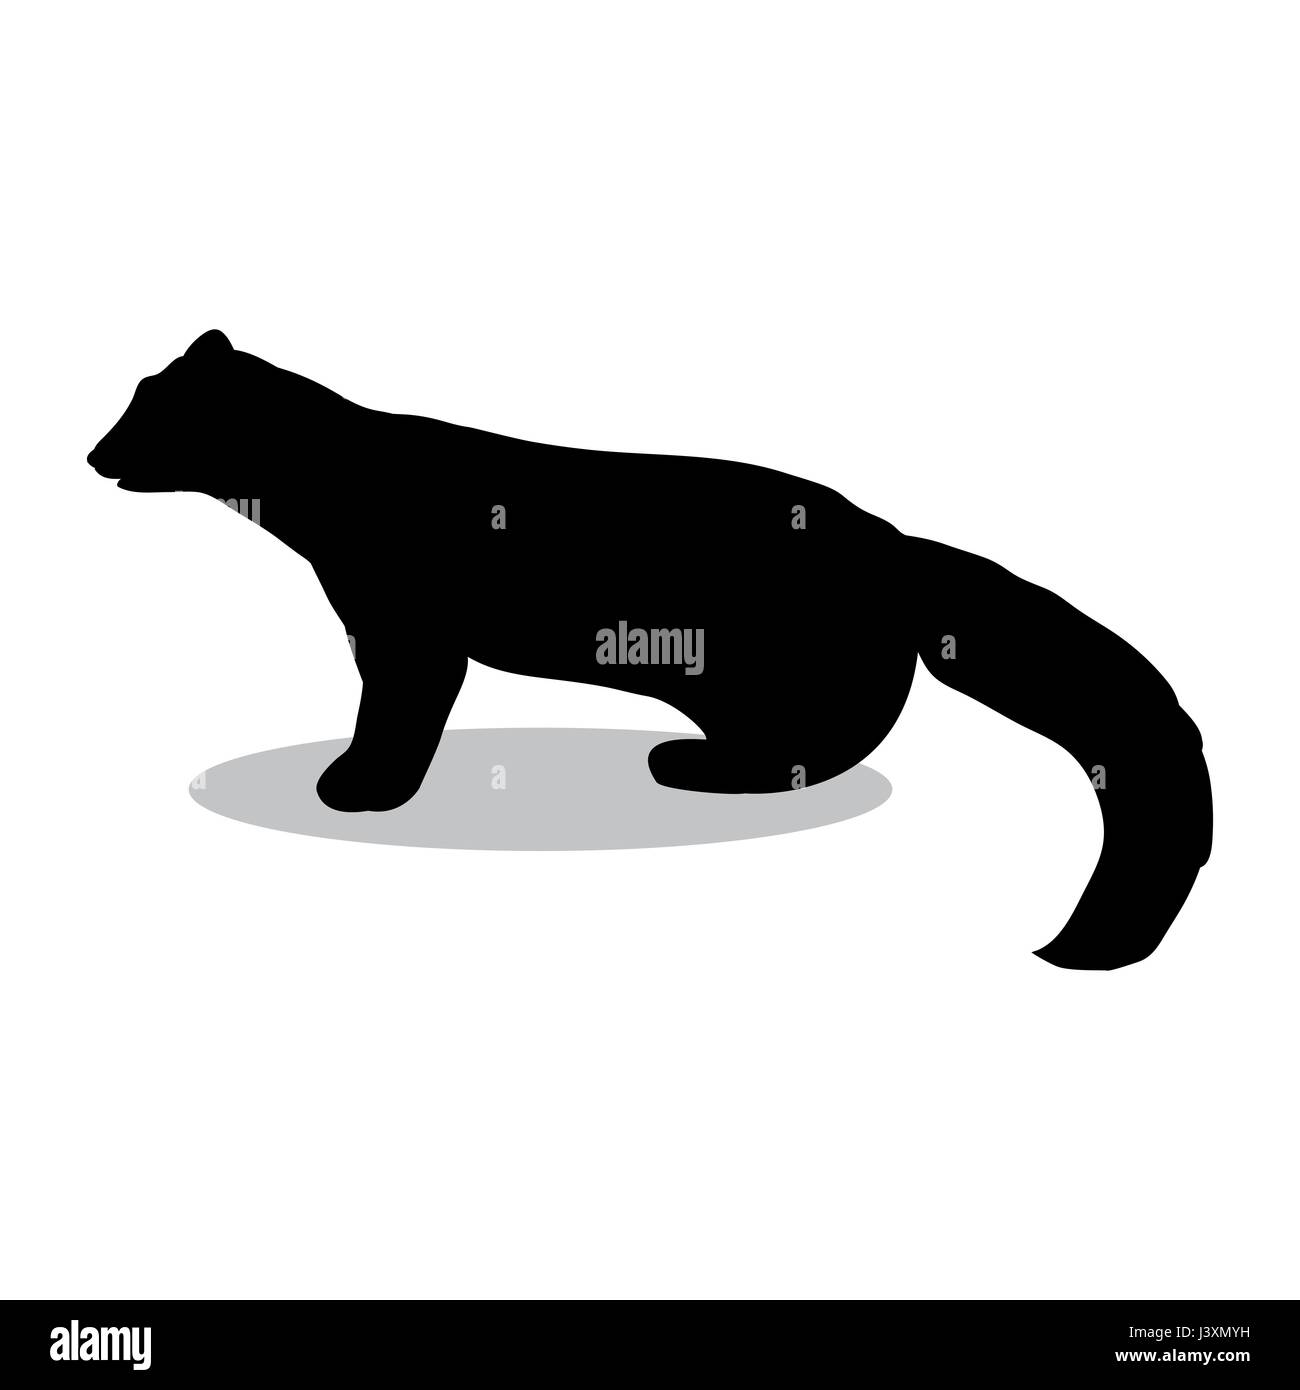 Marten wildlife black silhouette animal - Stock Vector